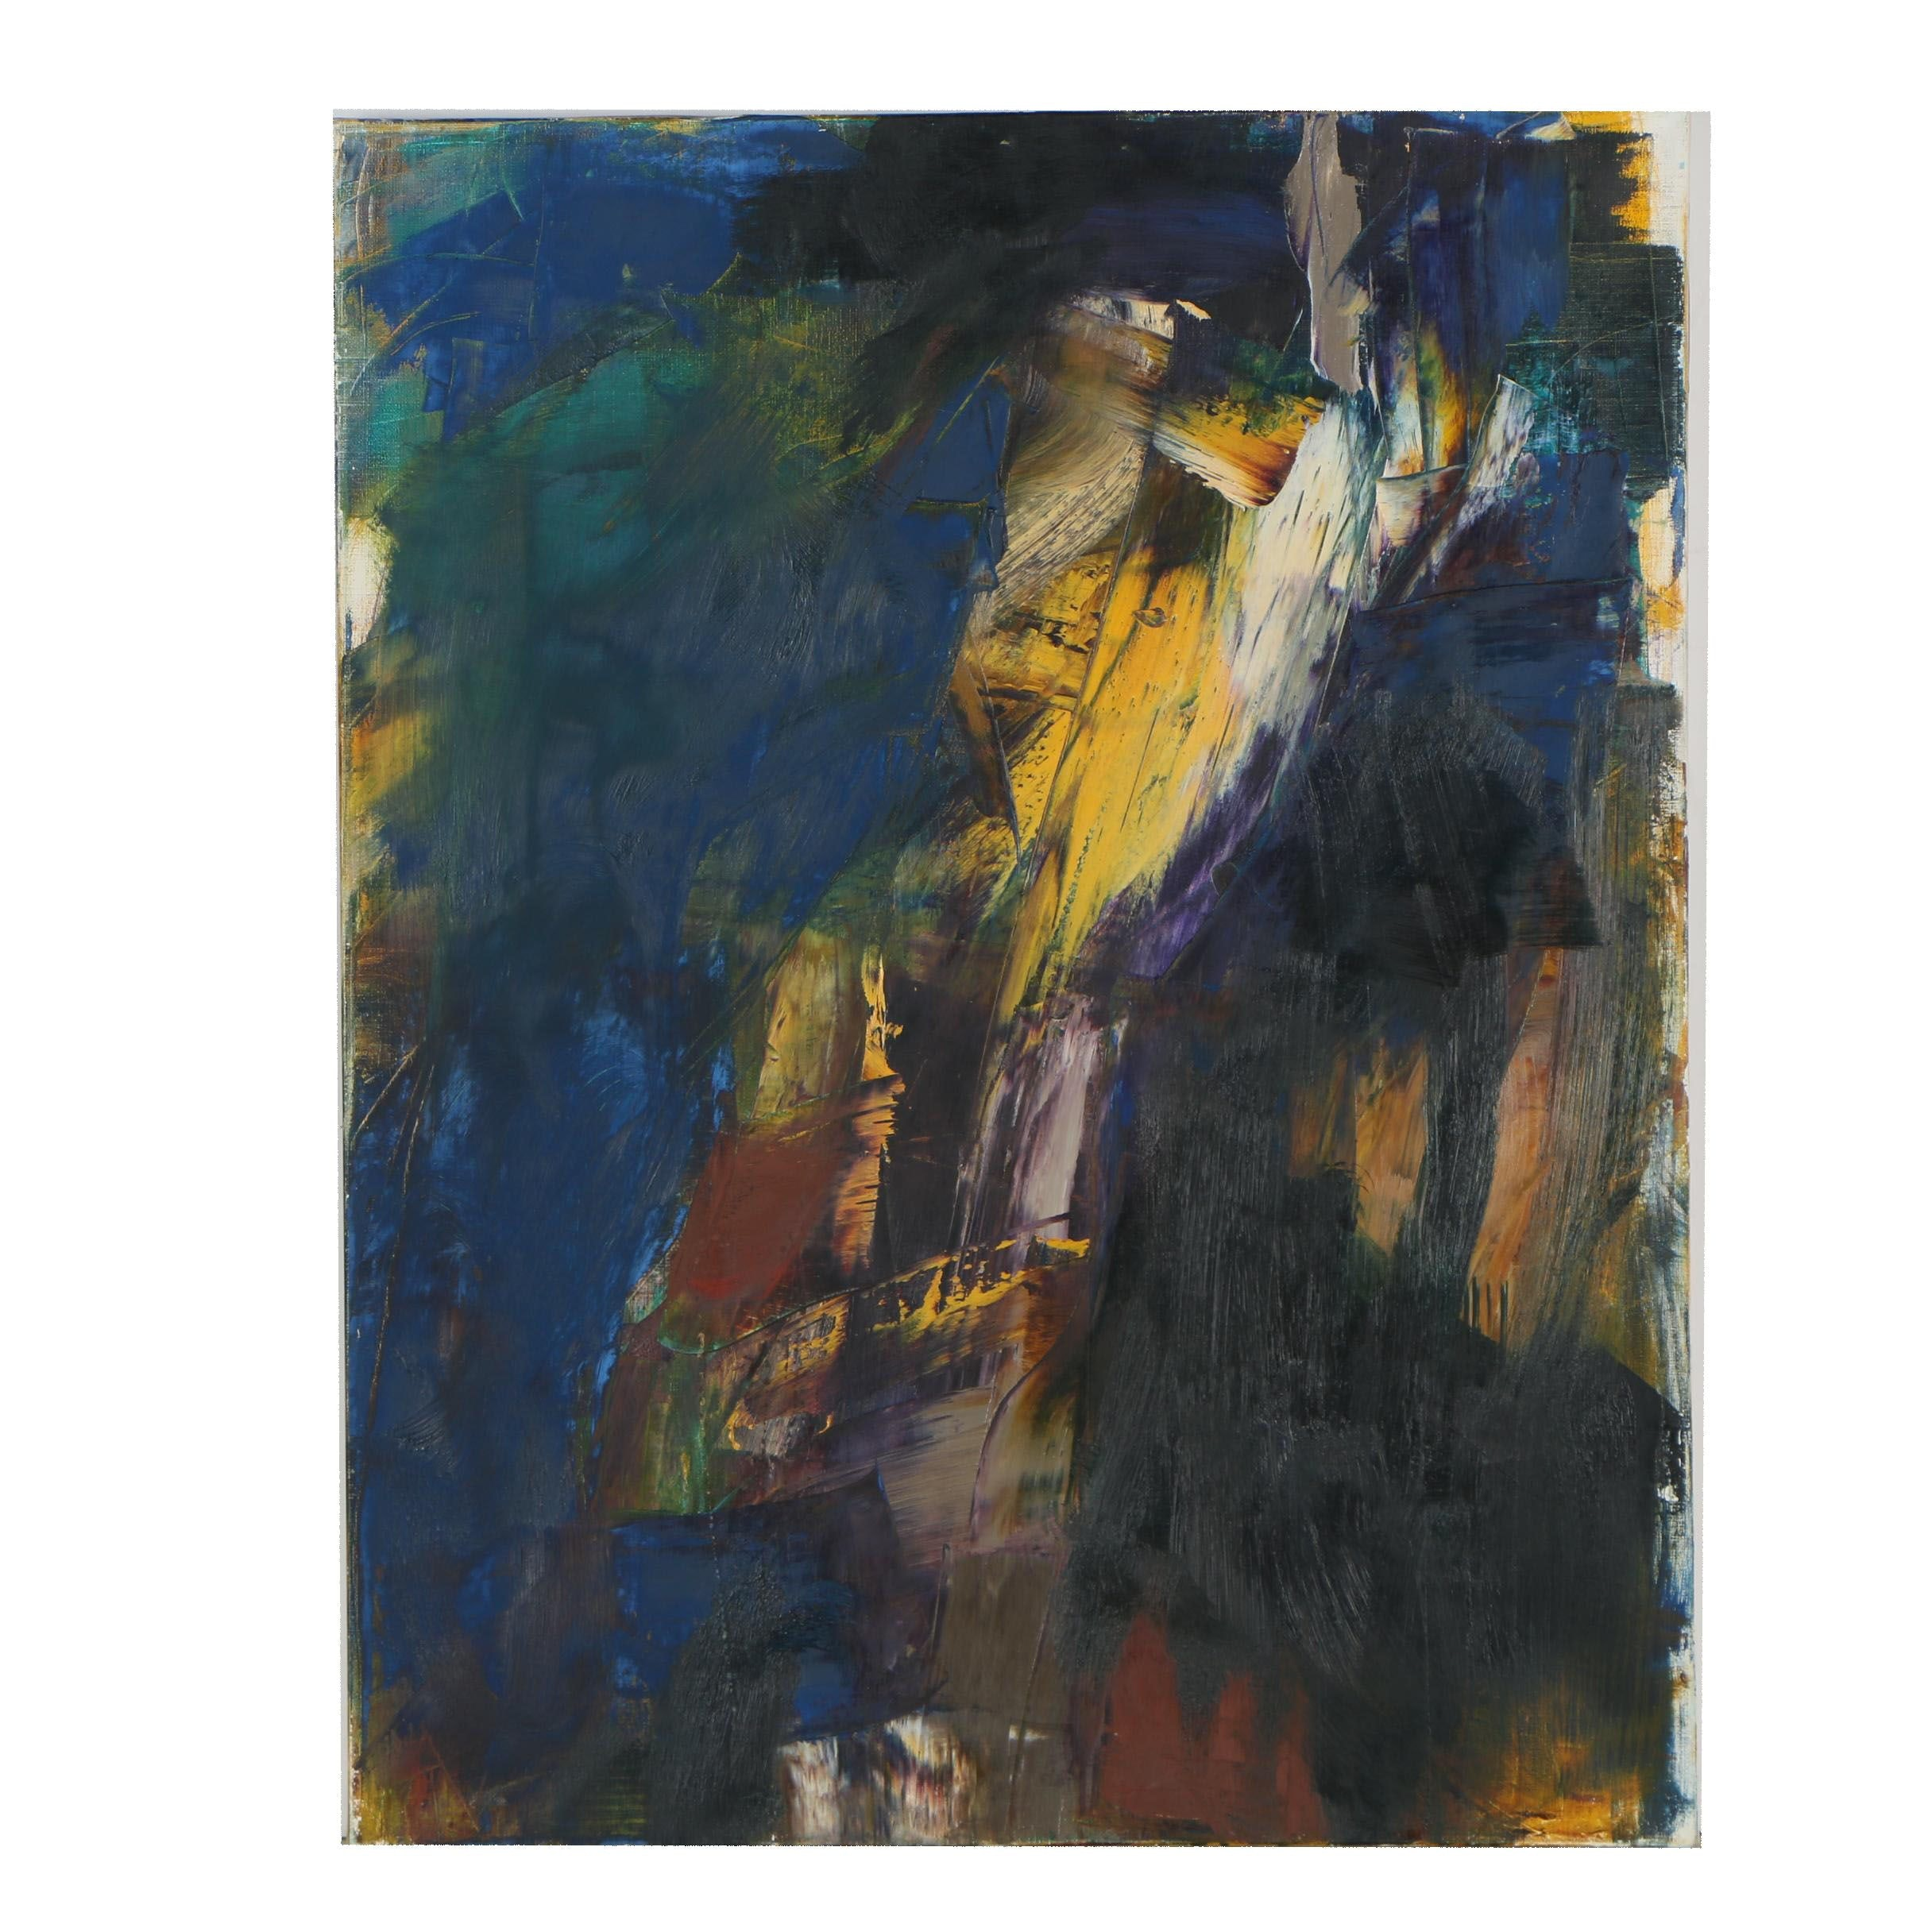 Richard Snyder 2000 Abstract Oil Painting